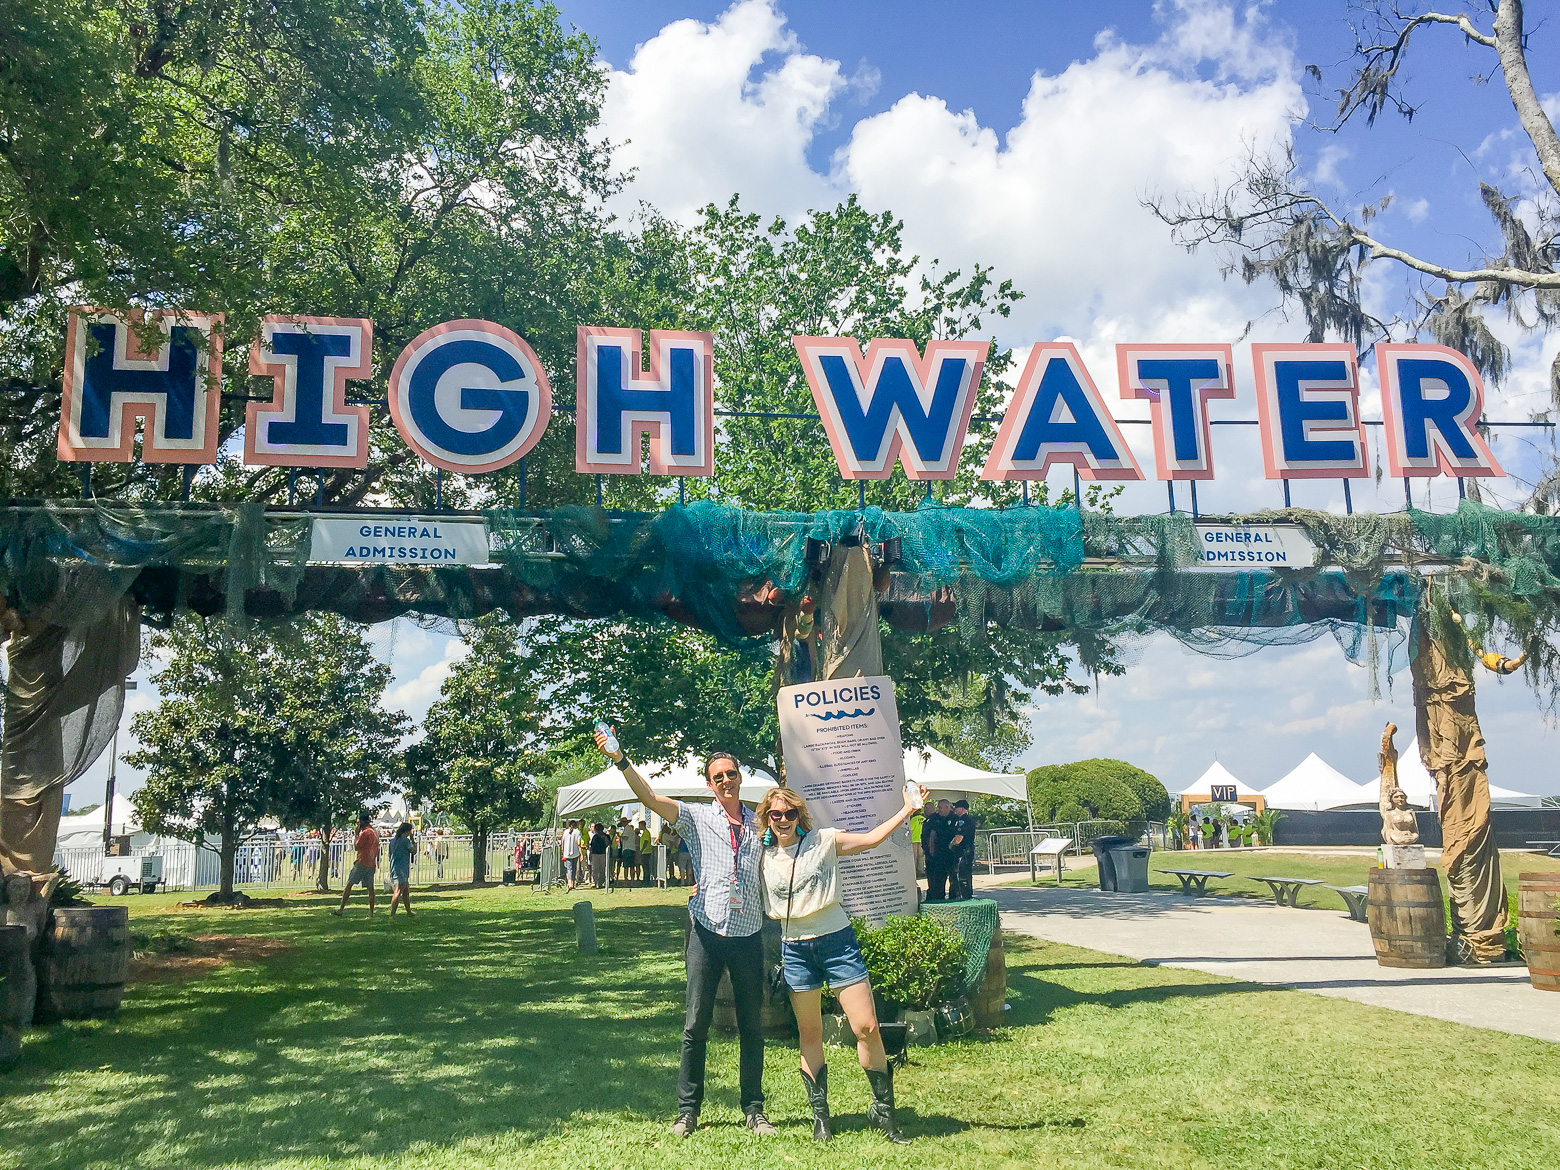 High Water Festival